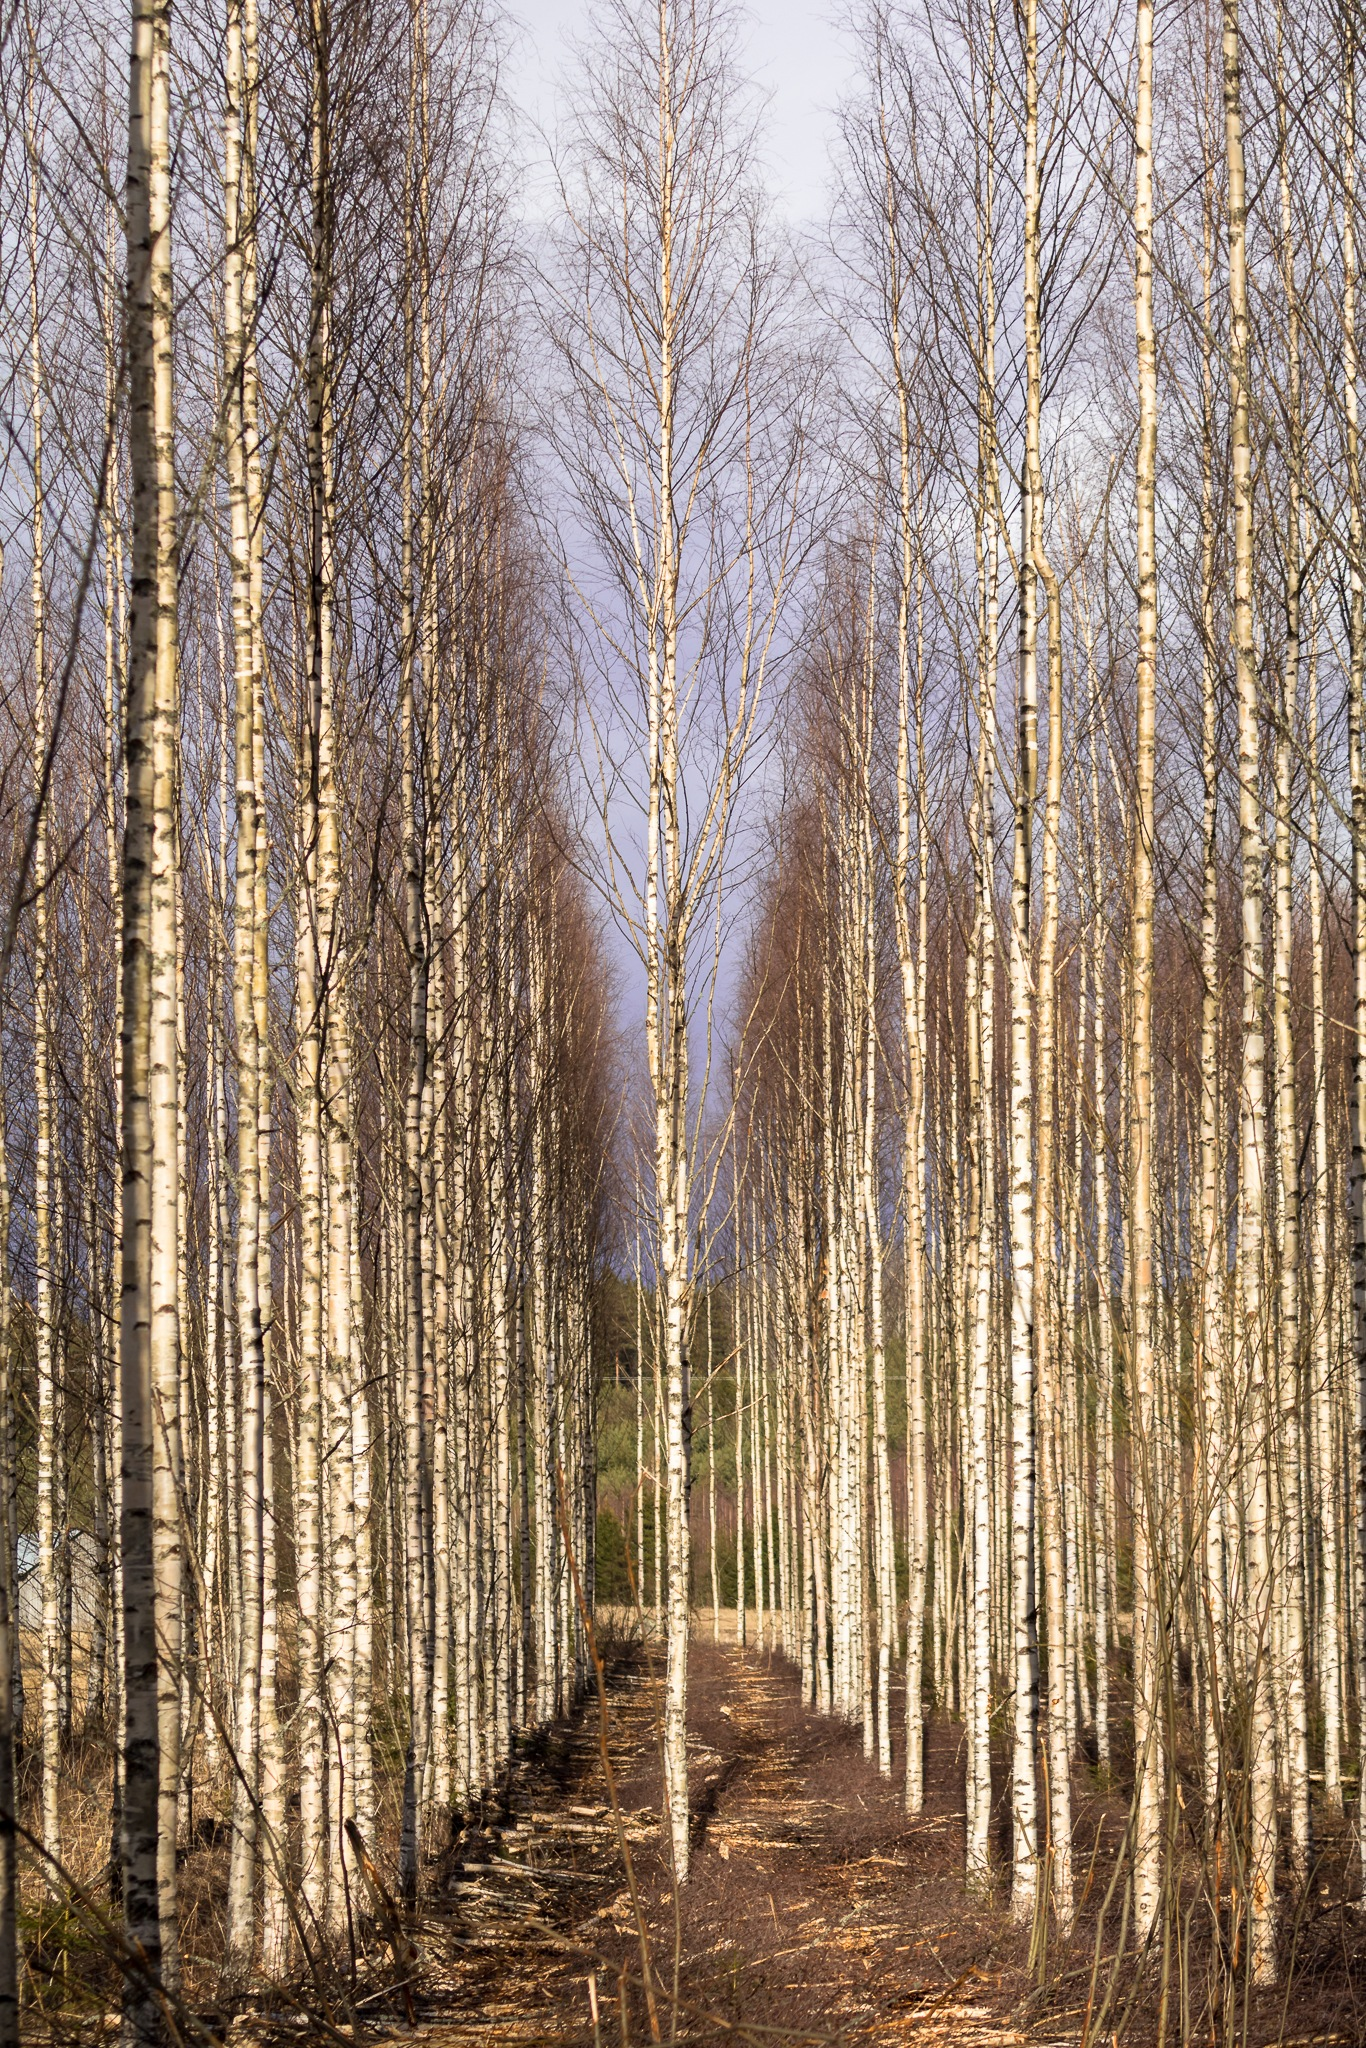 Birch forest in early spring by Anne_V